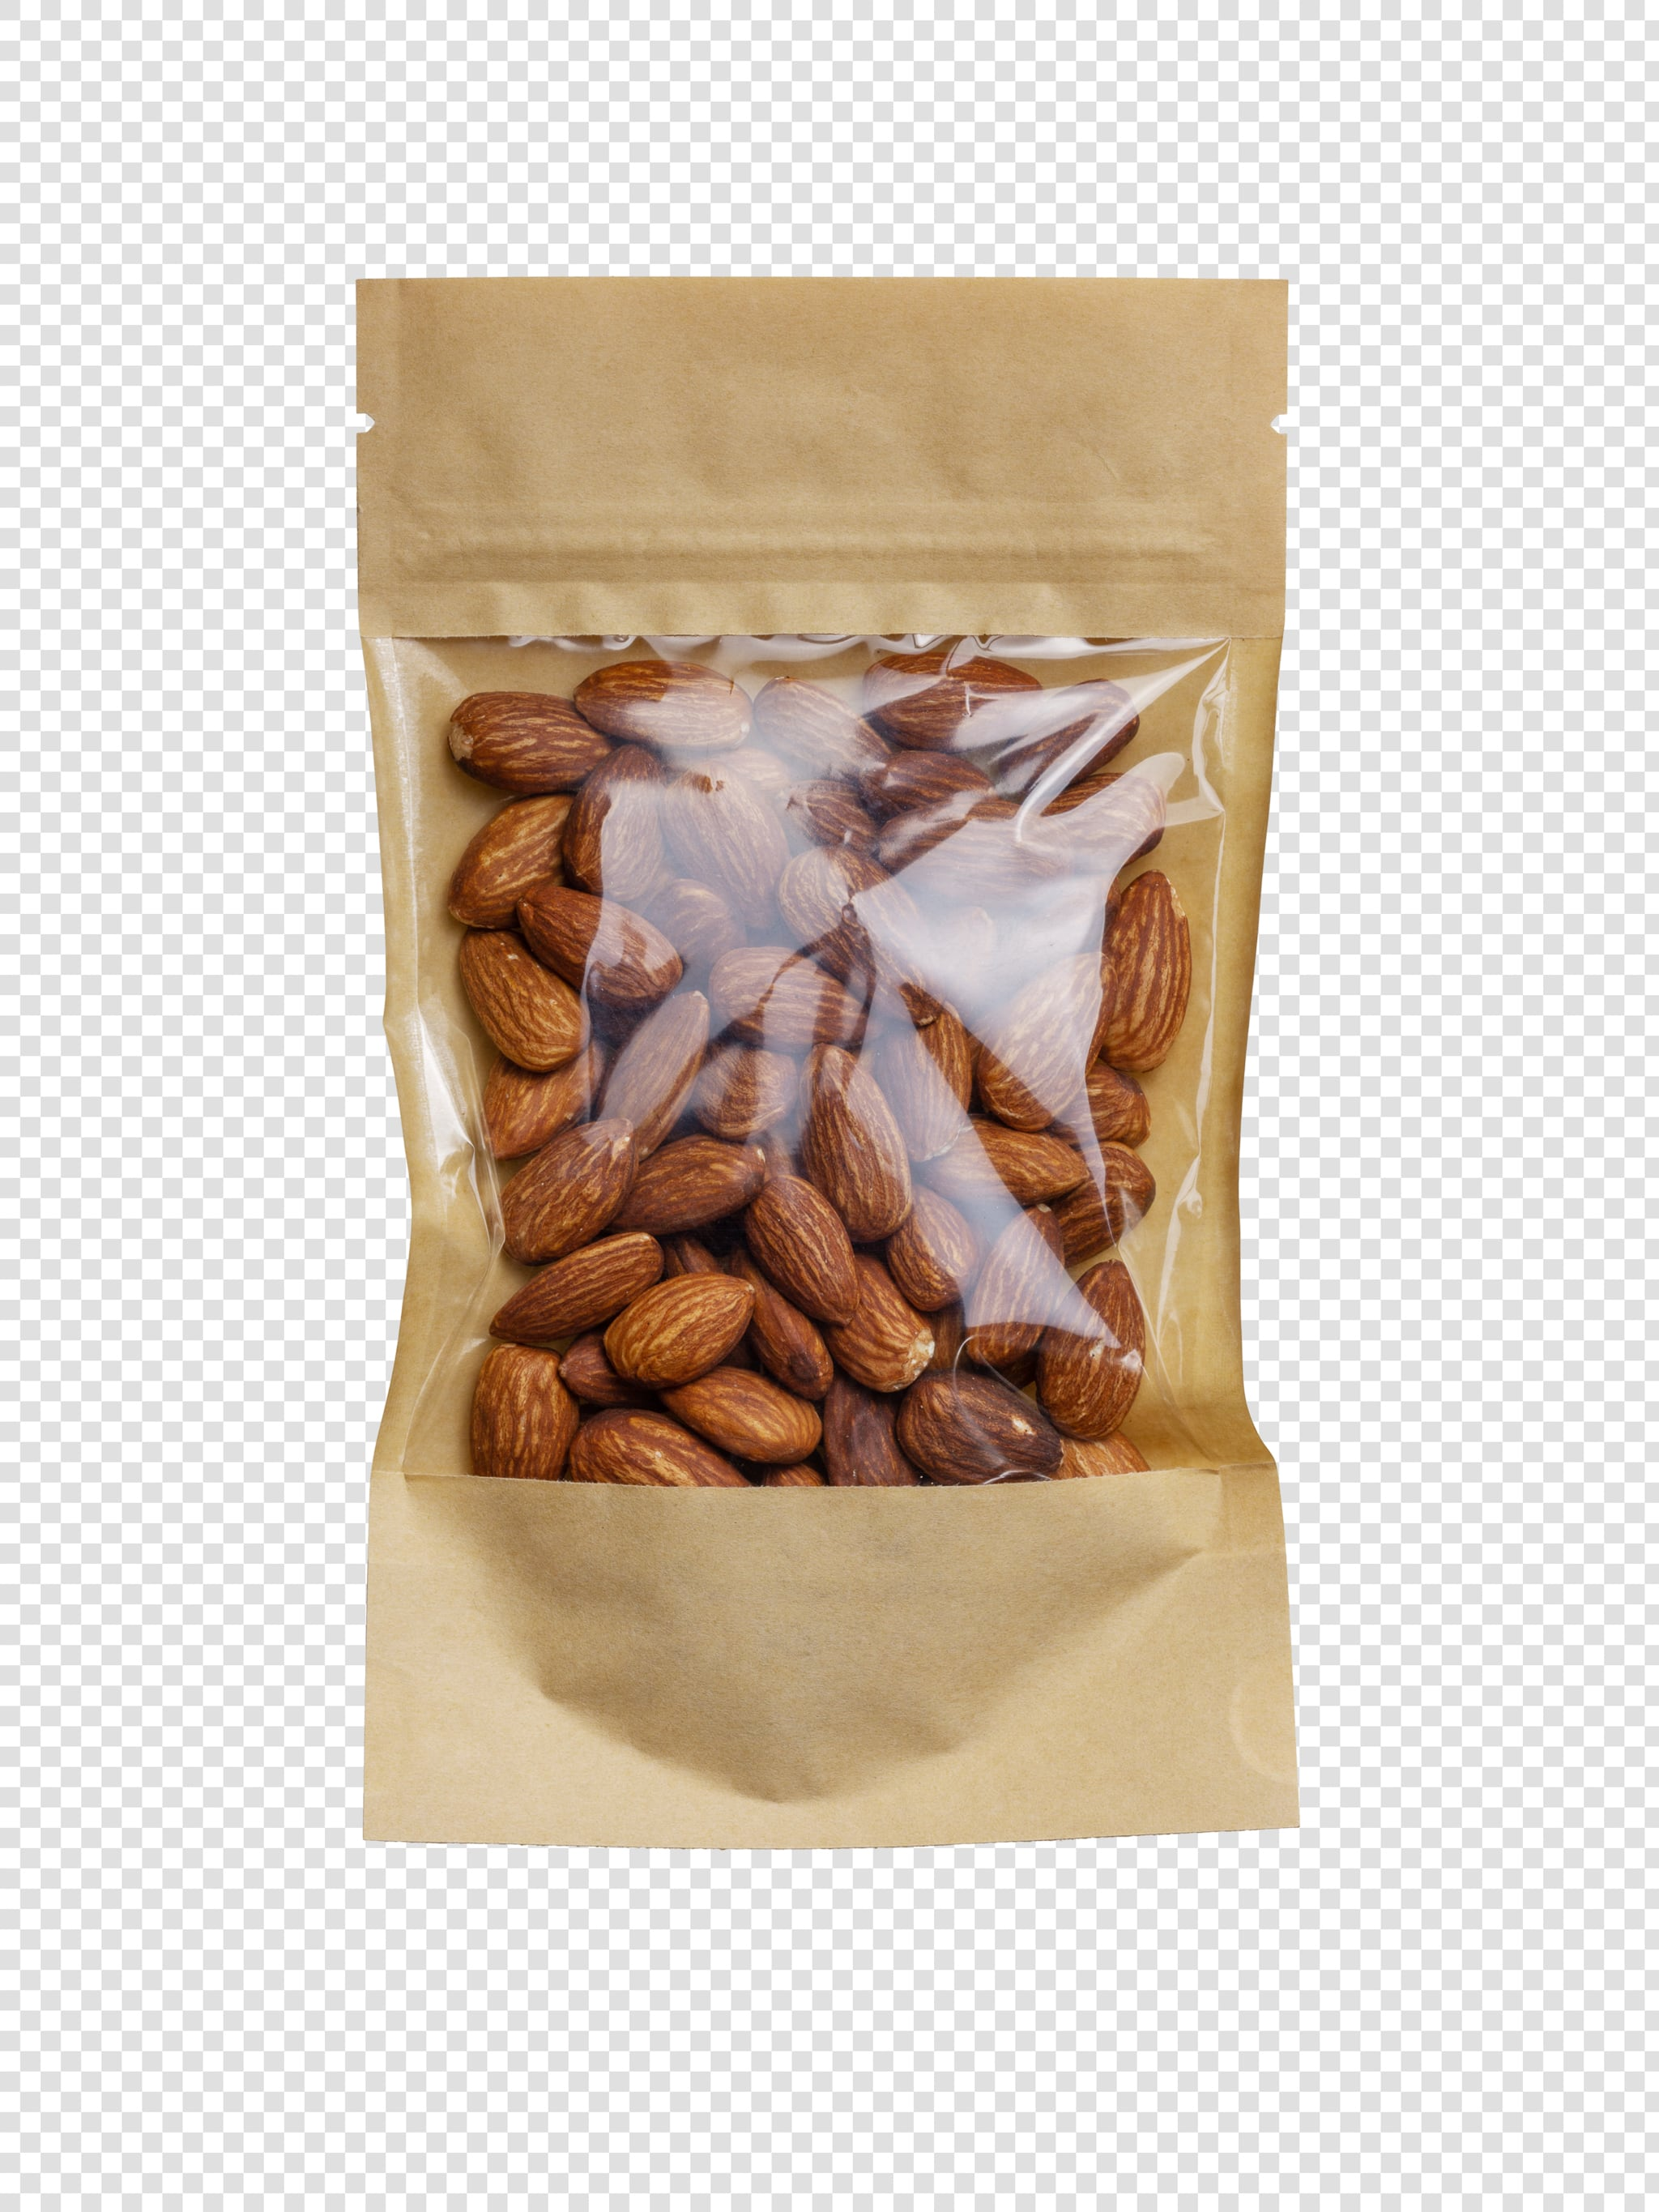 Clean Isolated PSD image of Pack of almonds on transparent background with separated shadow